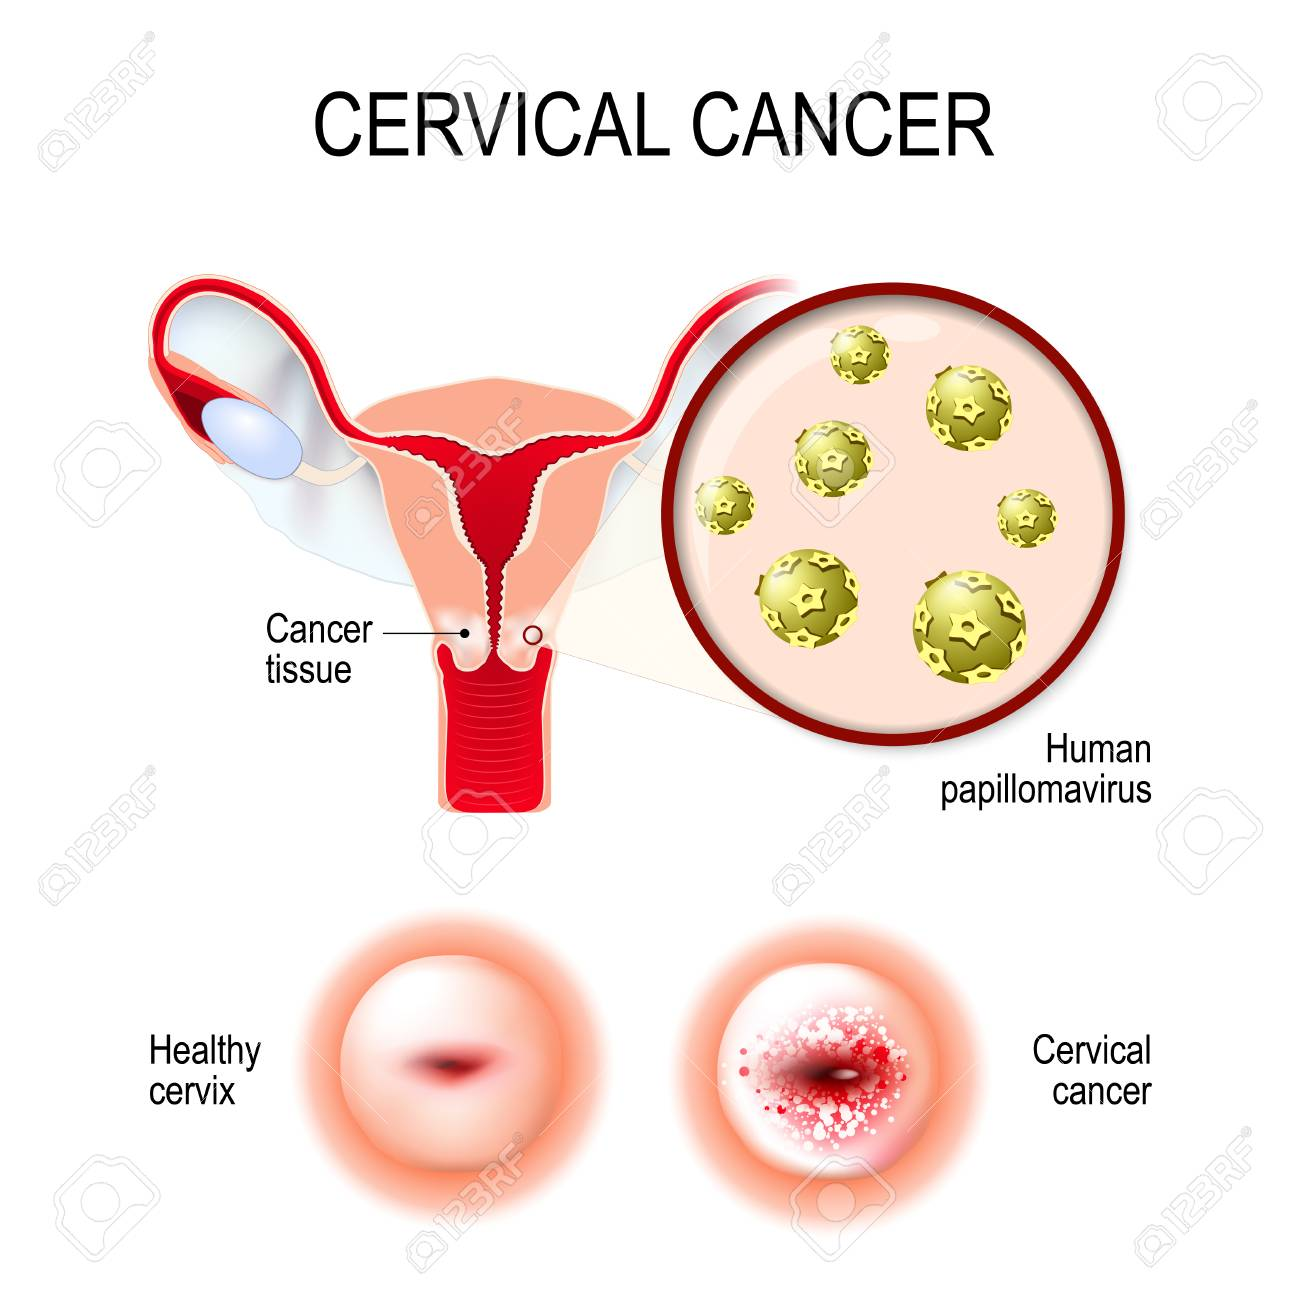 does hpv cause uterine cancer